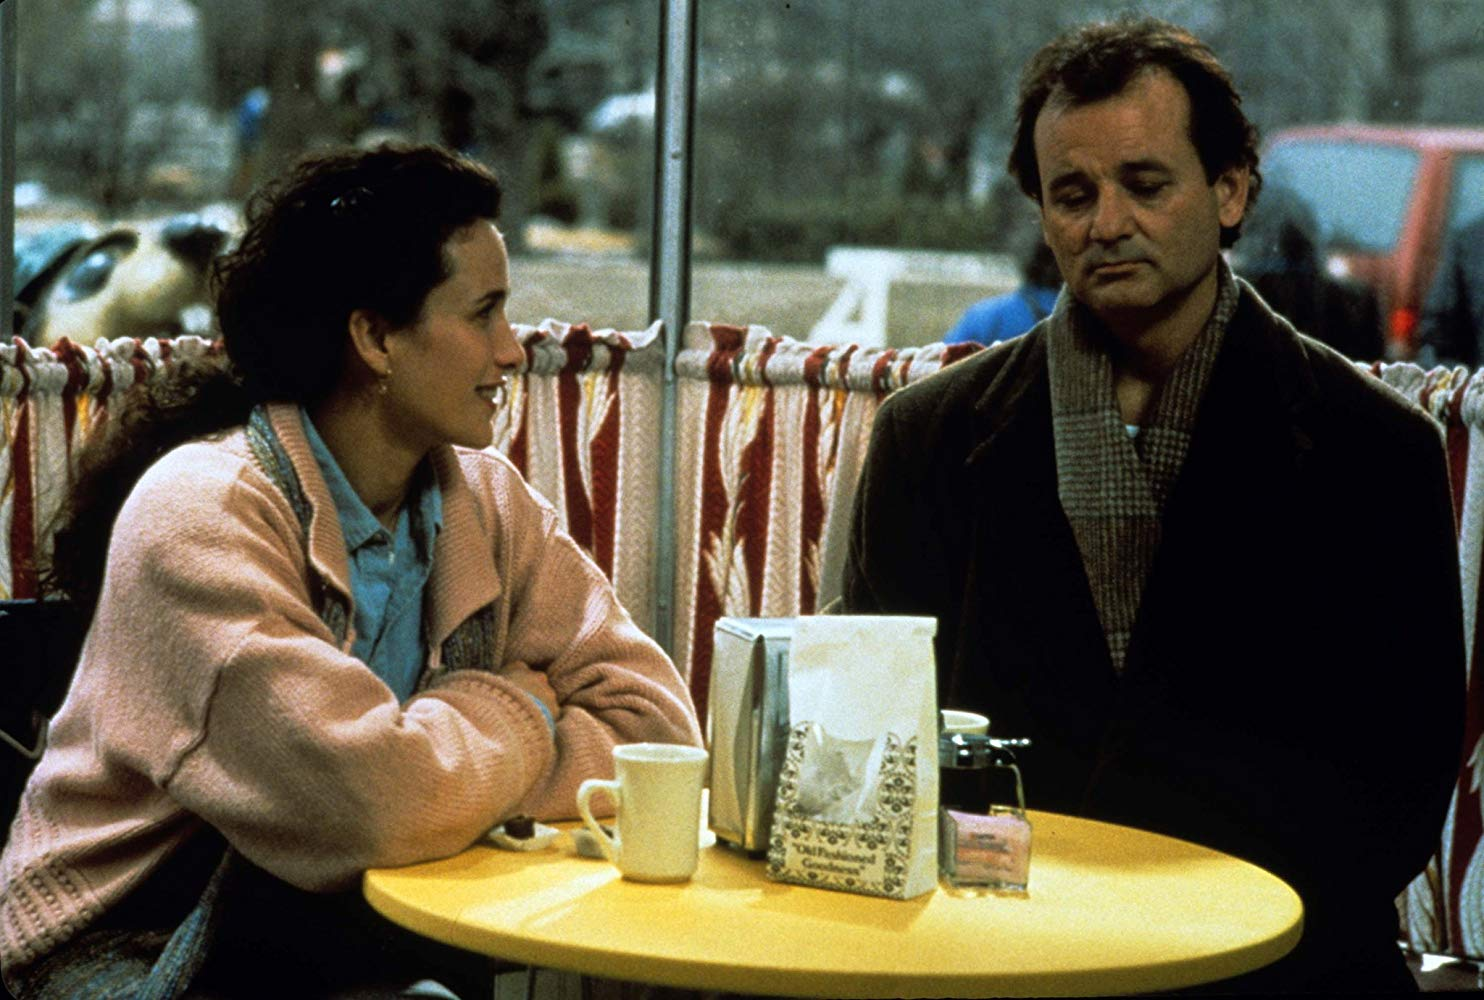 Bill Murray caught in a timeloop and forced to repeat the same day and the object of his affections Andie McDowell in Groundhog Day (1993)